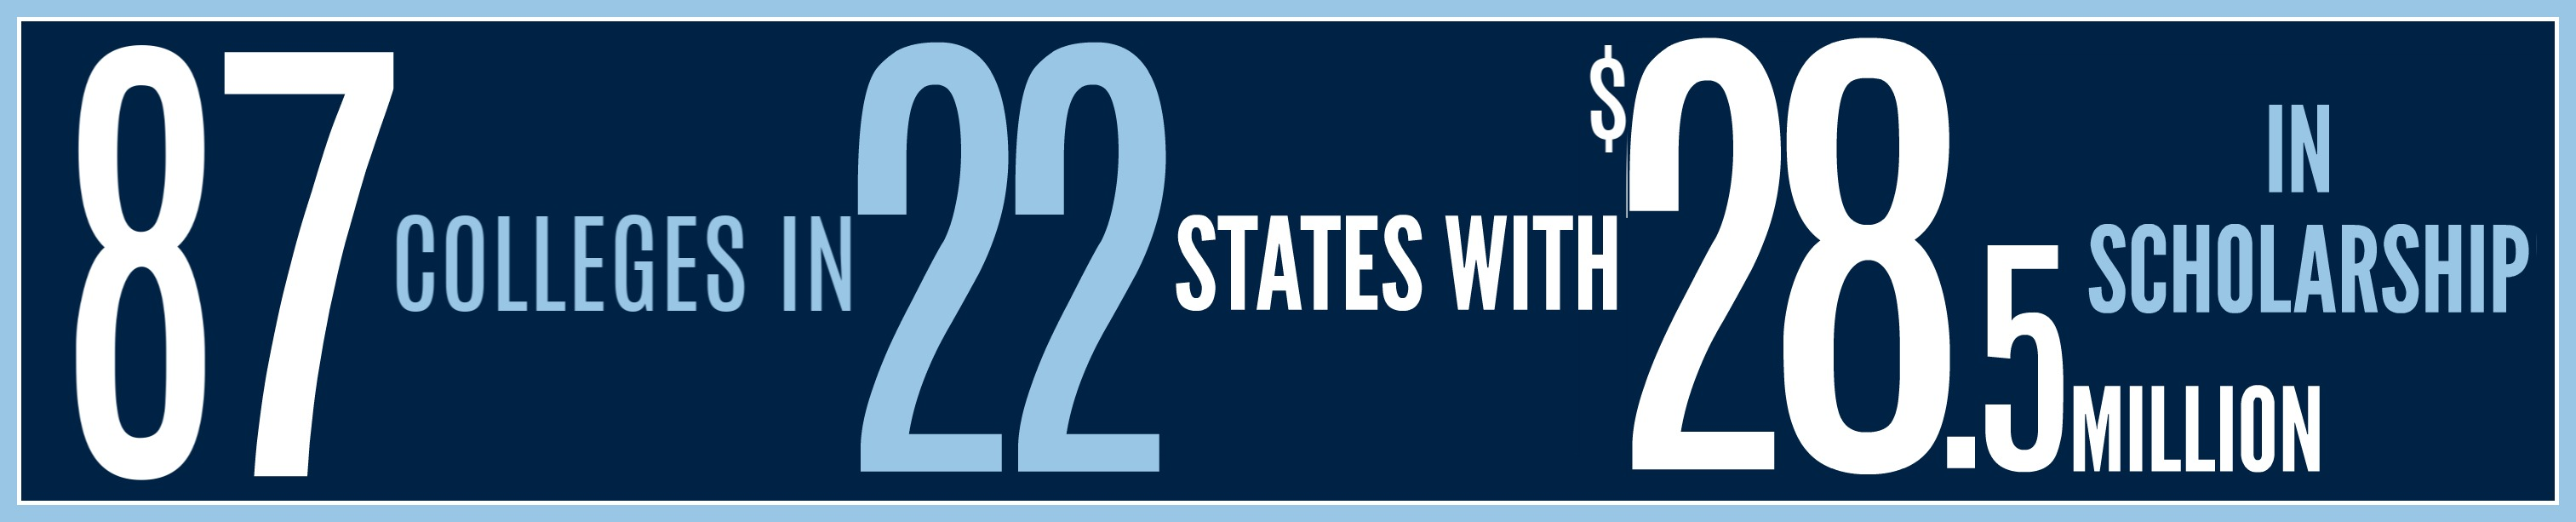 NUMBER_OF_COLLEGES_IN_STATES